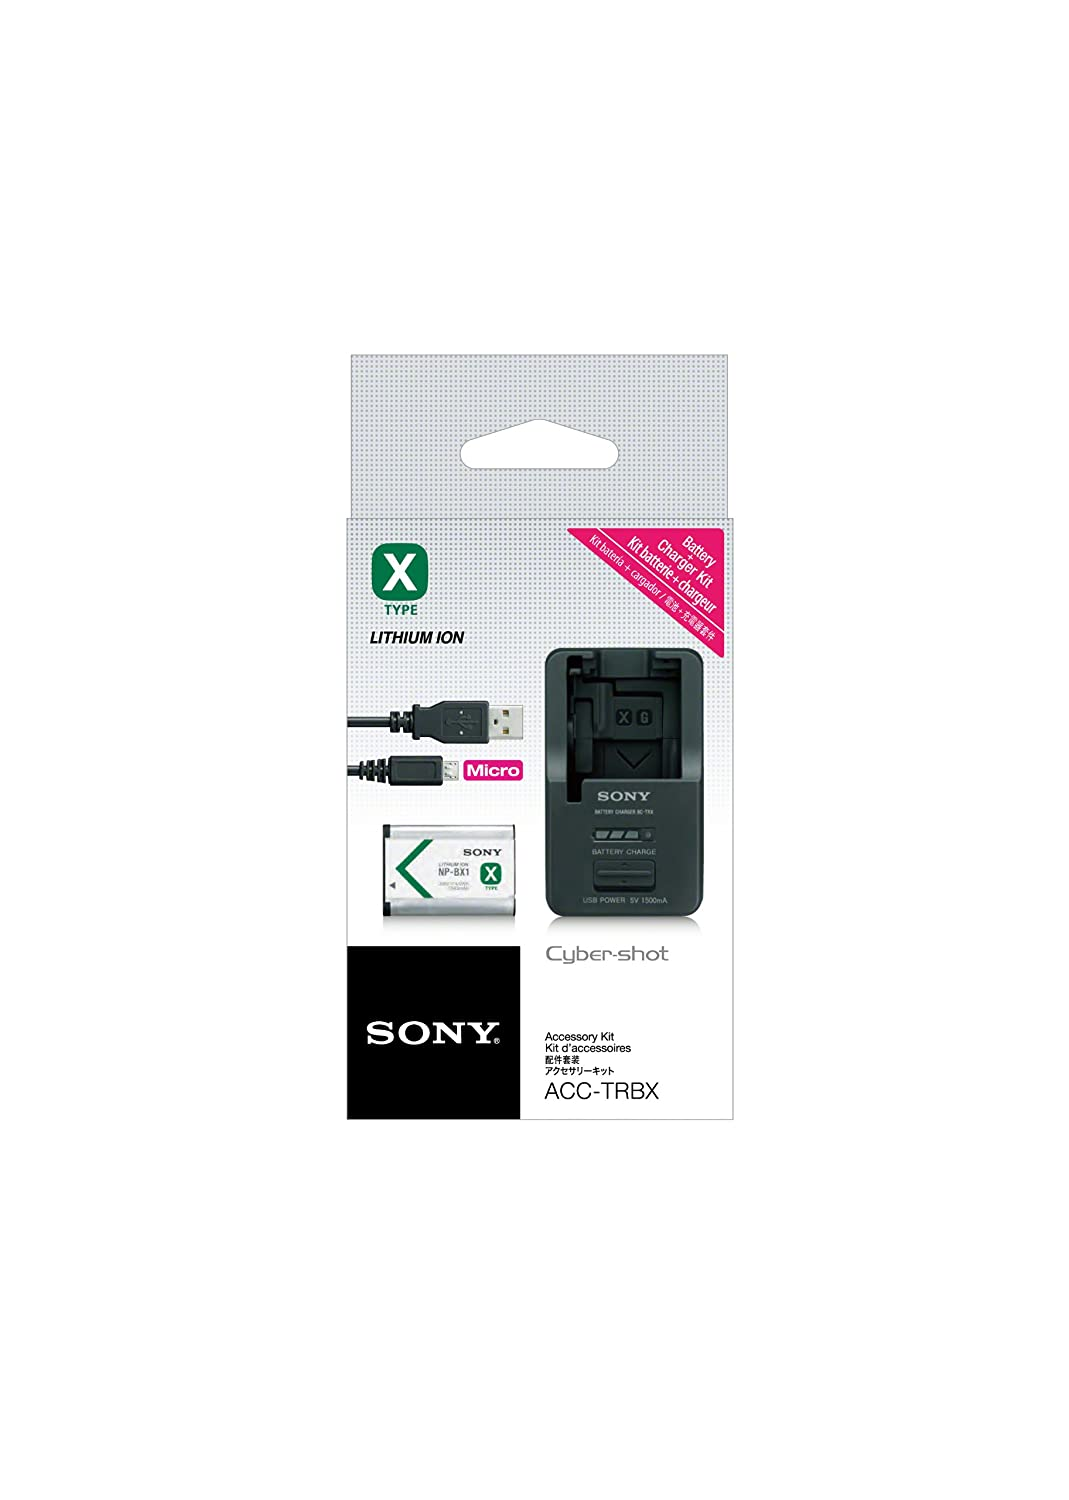 Sony ACCTRBX  Battery Charger Black Battery  and USB Cable